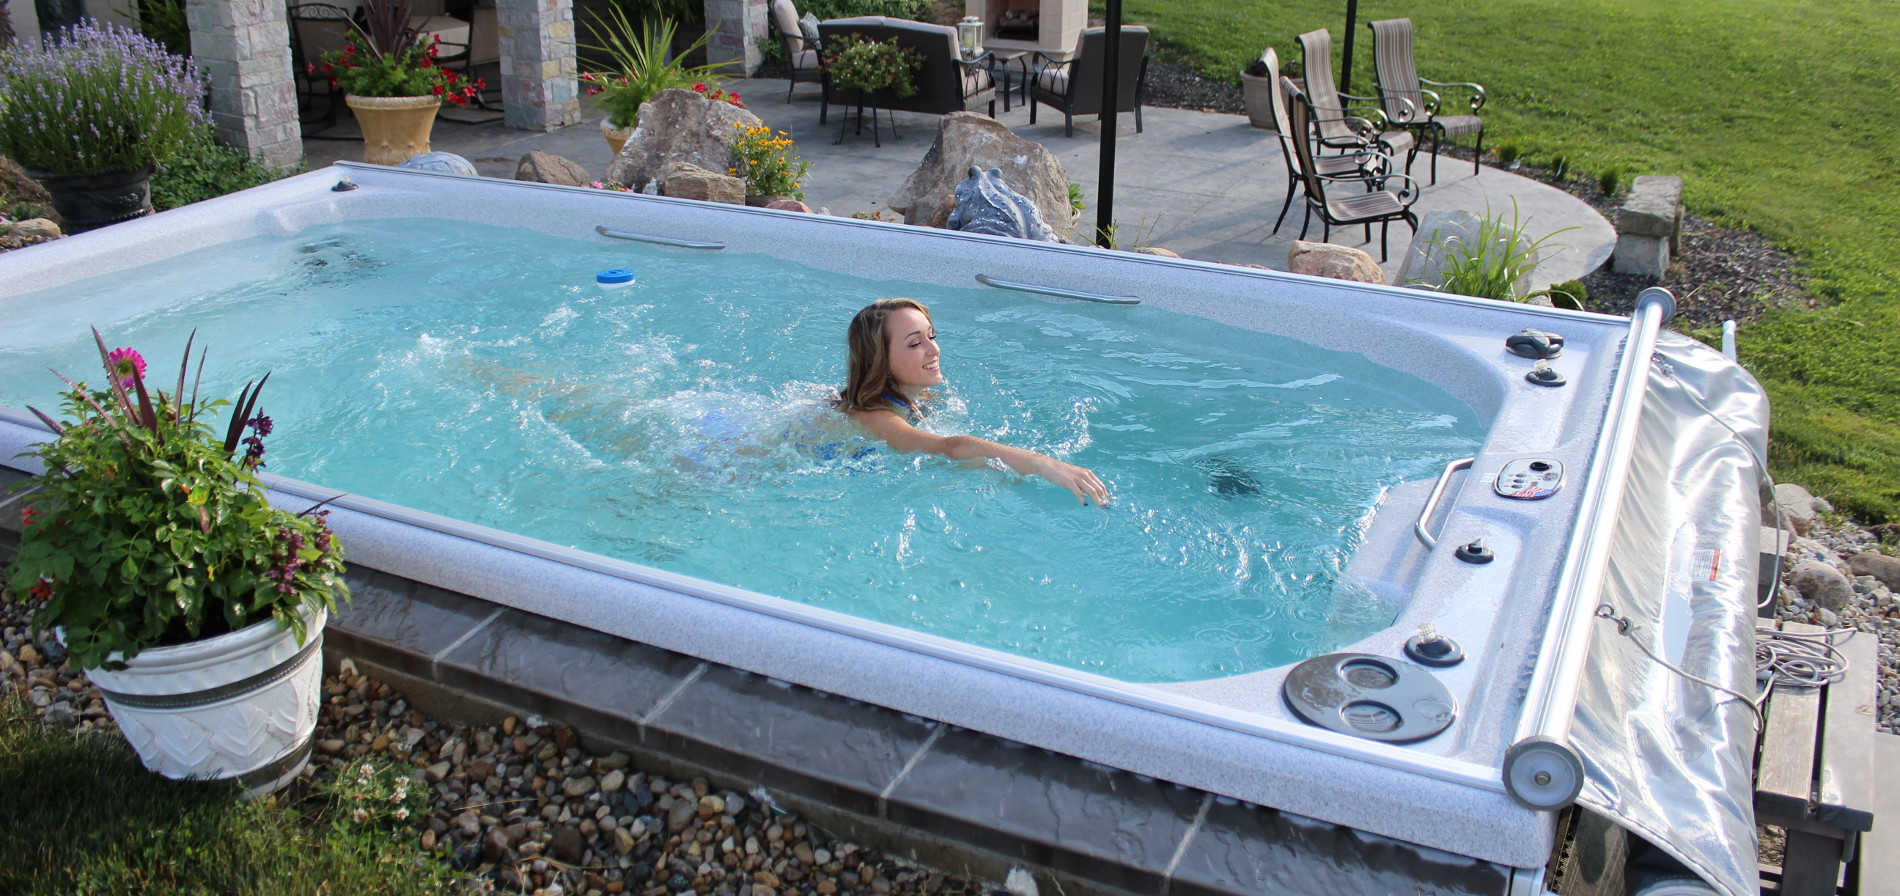 Piscine a contre courant prix id es de design for Prix piscine spa